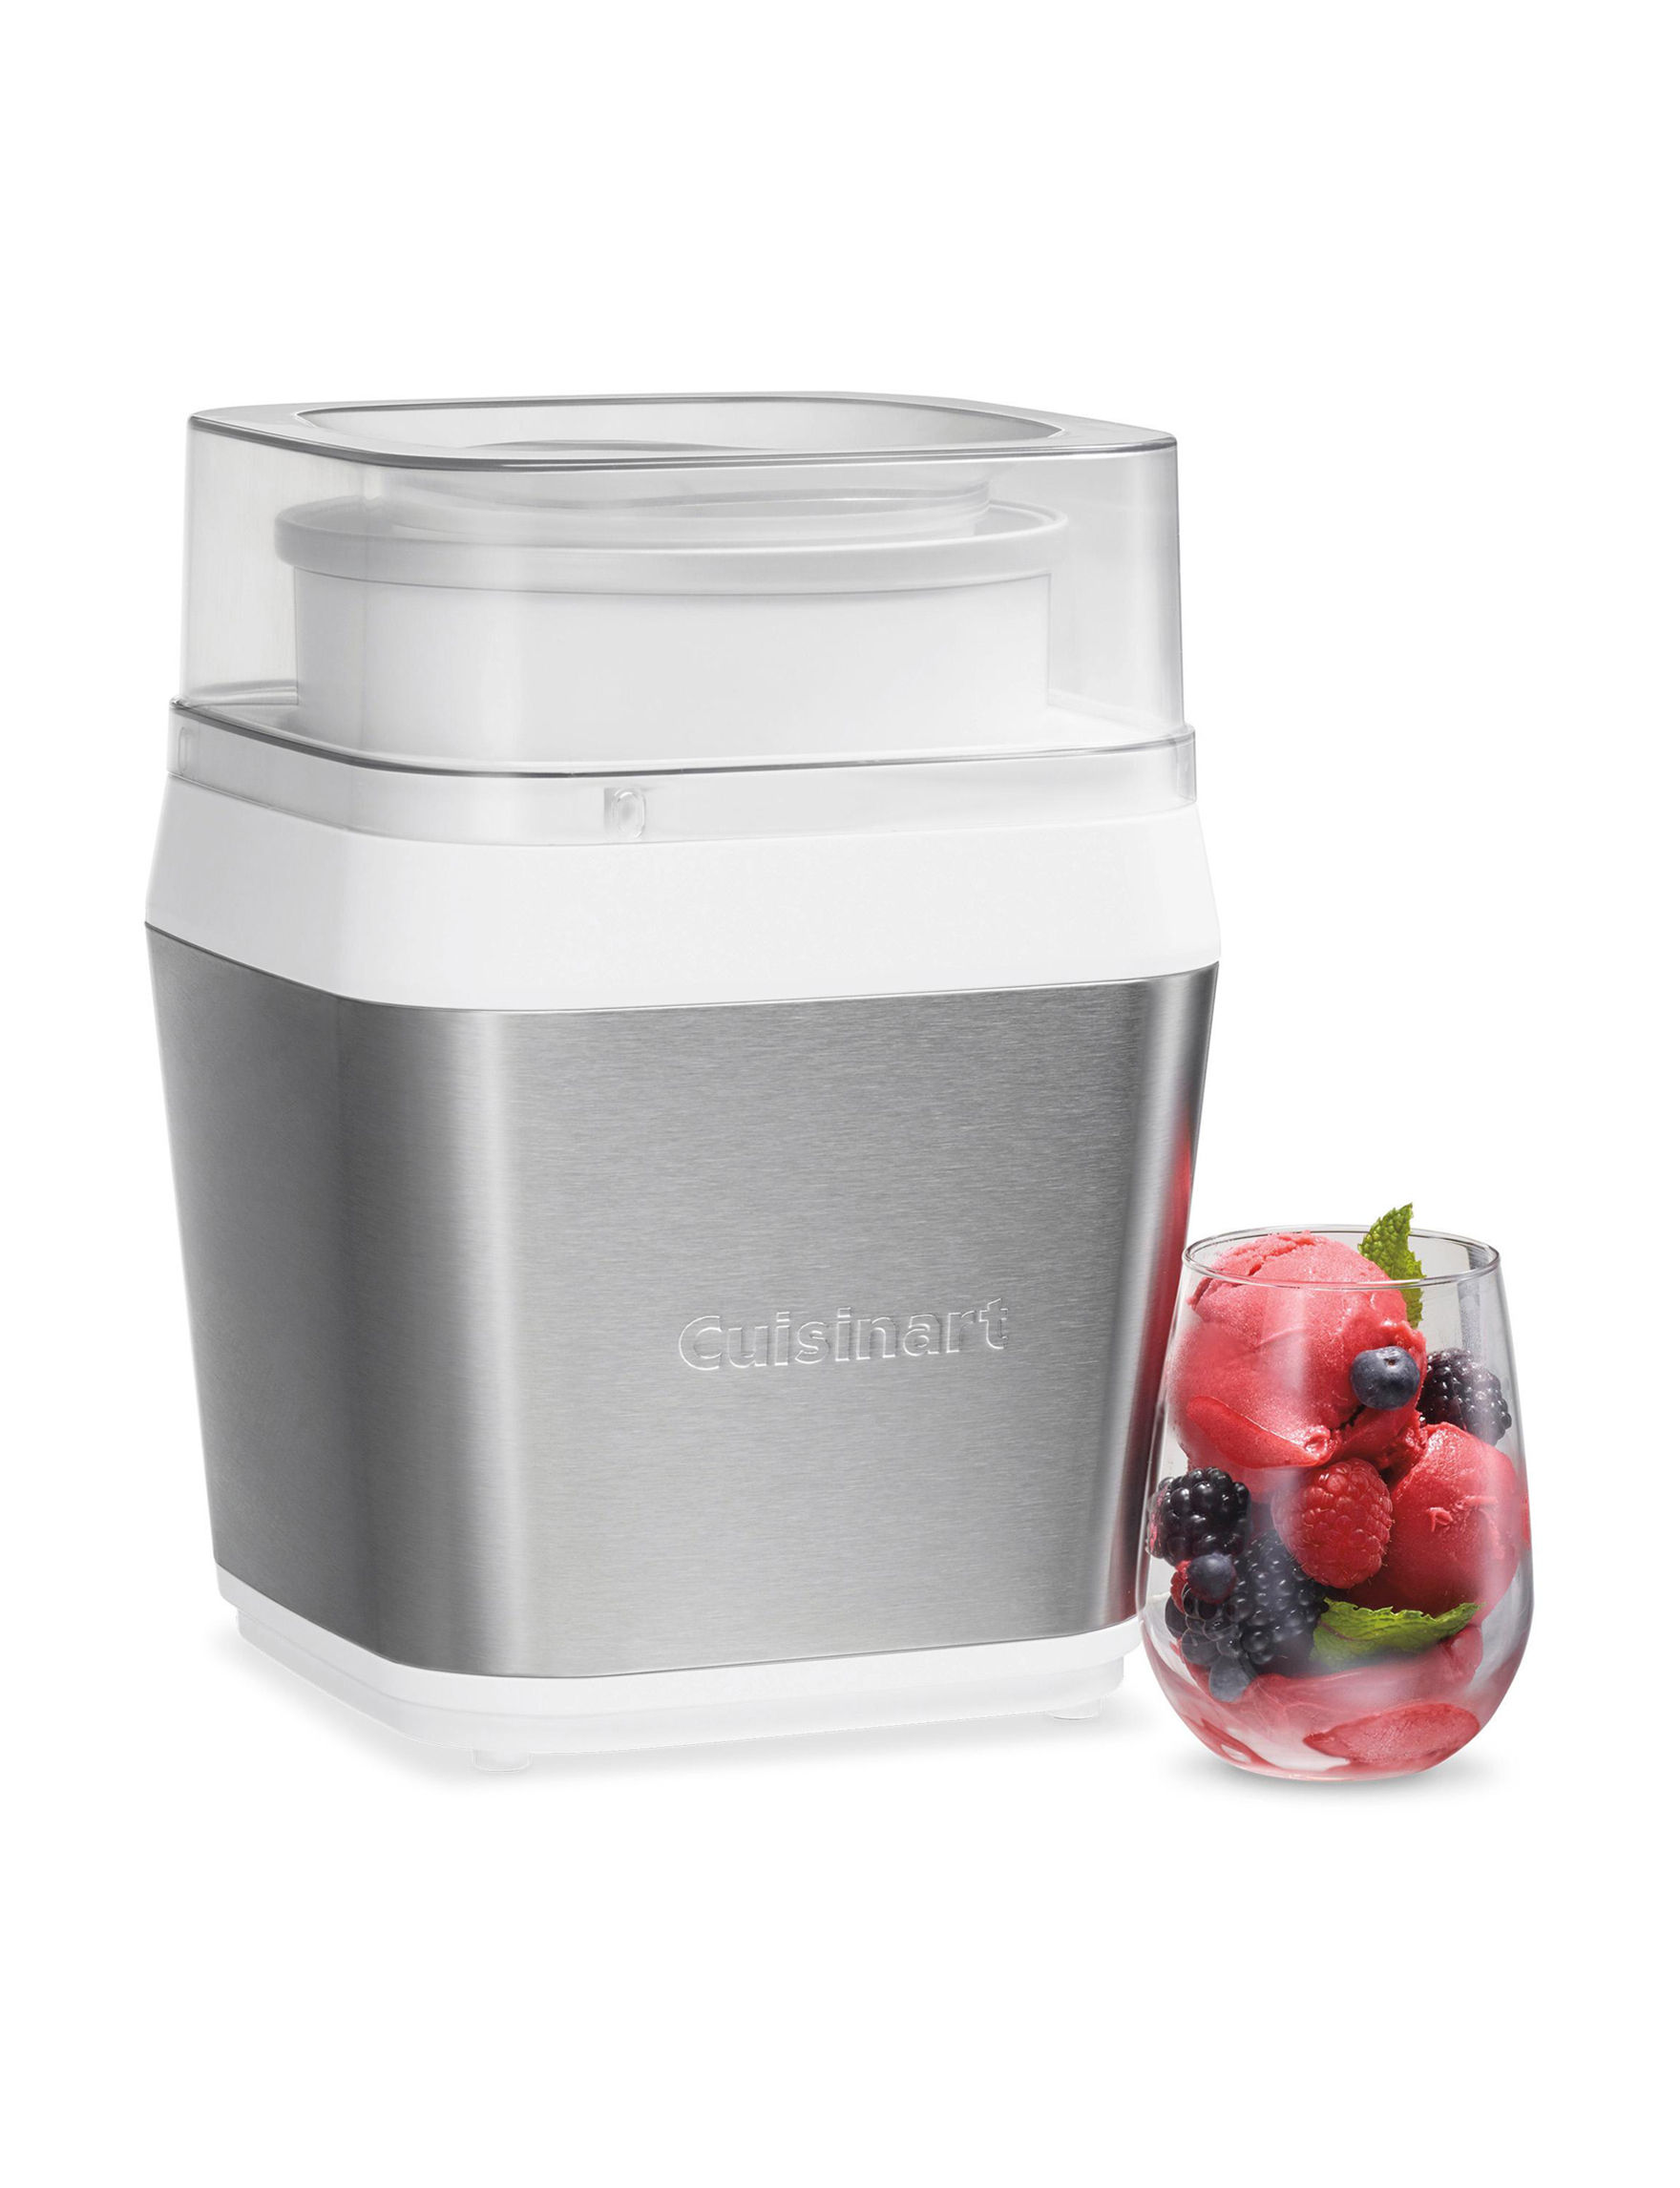 Cuisinart Stainless Steel Specialty Food Makers Kitchen Appliances